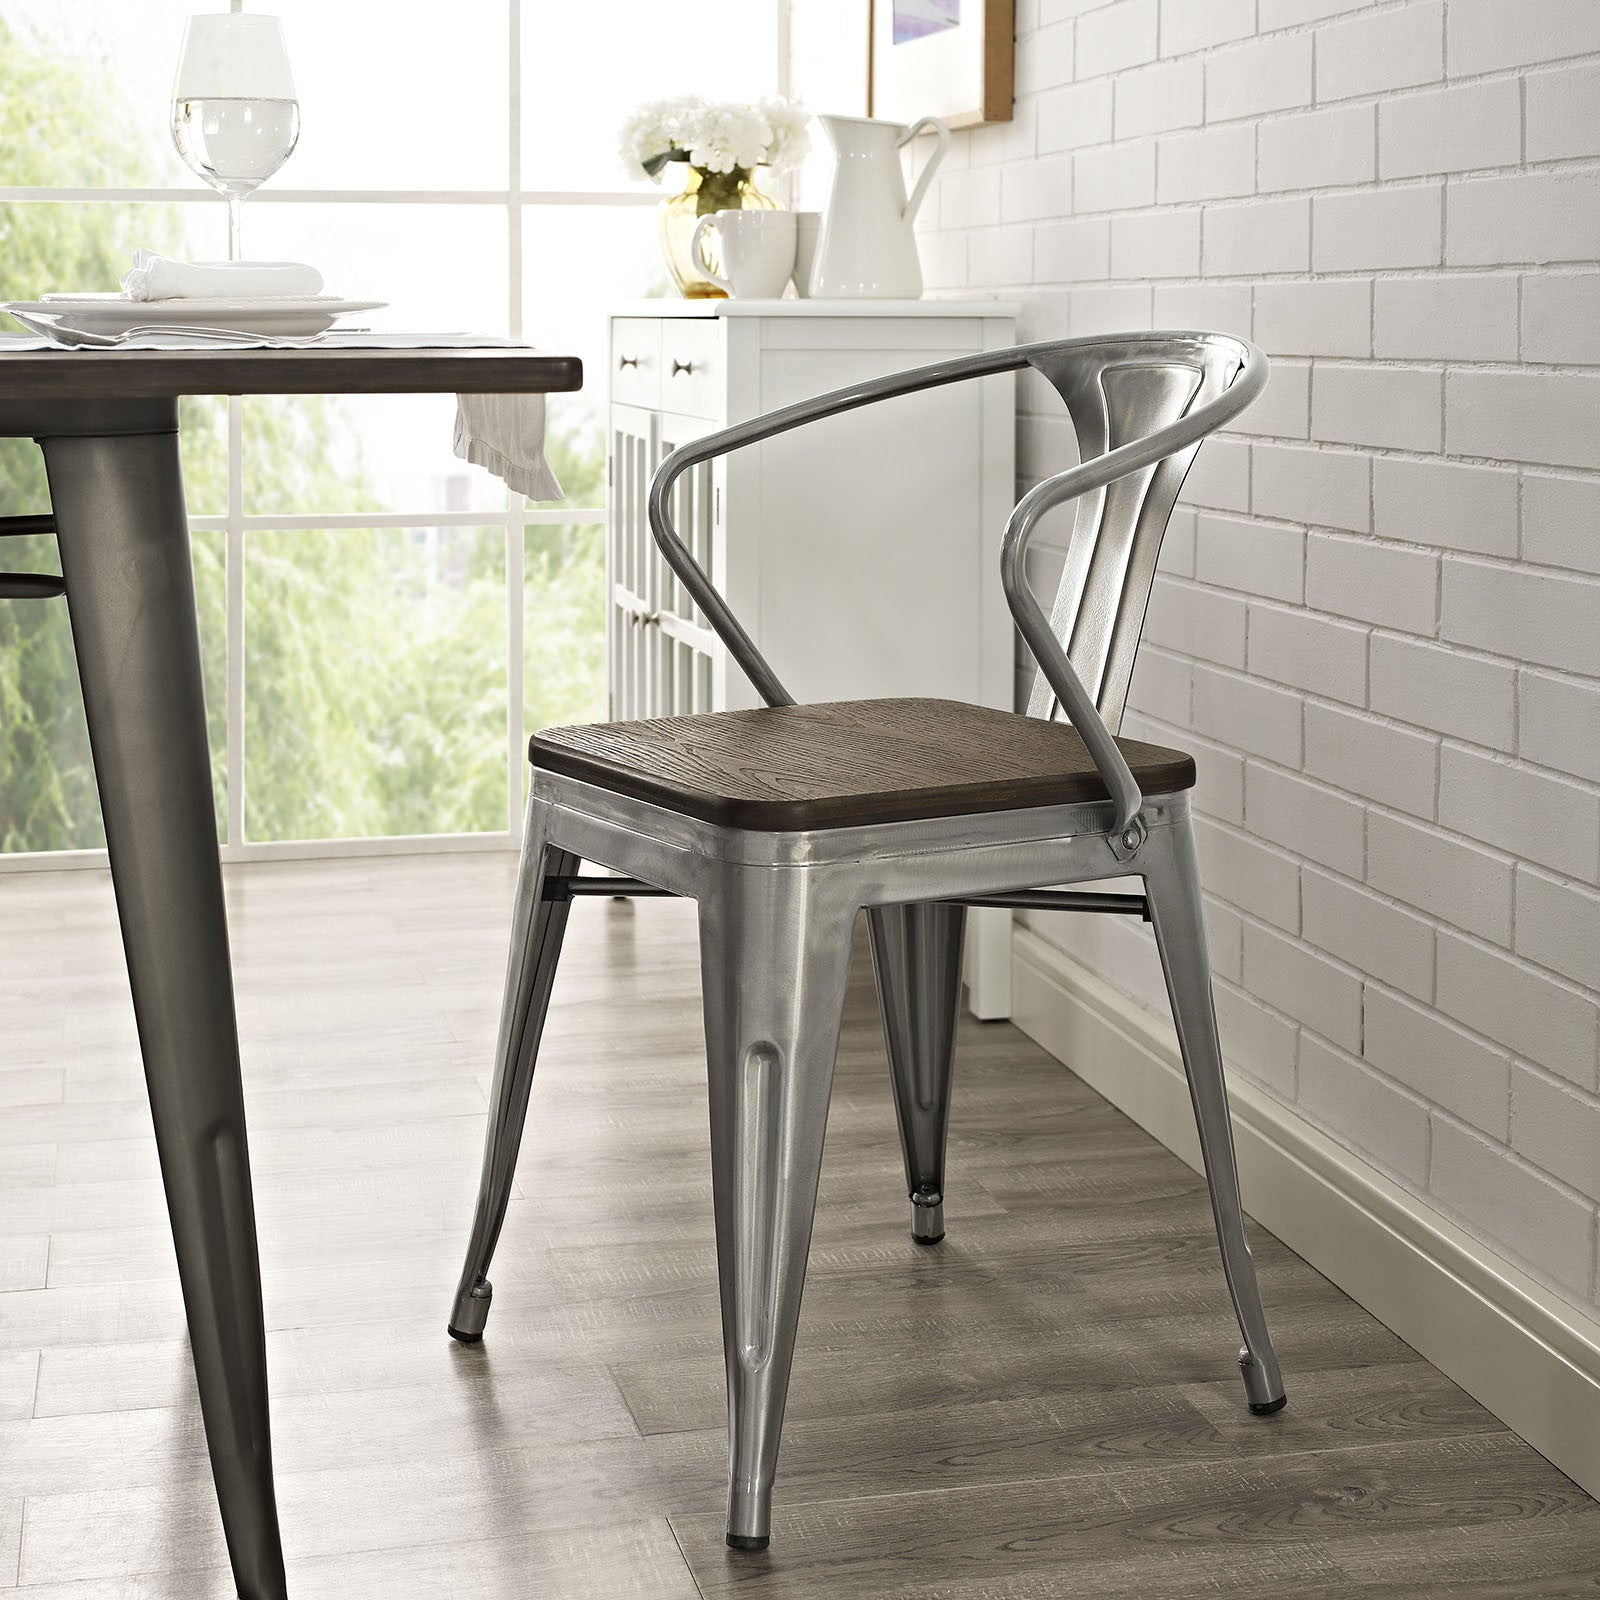 bamboo dining chairs cheap drexel heritage dining chairs ebay via panora bamboo dining chair gunmetal